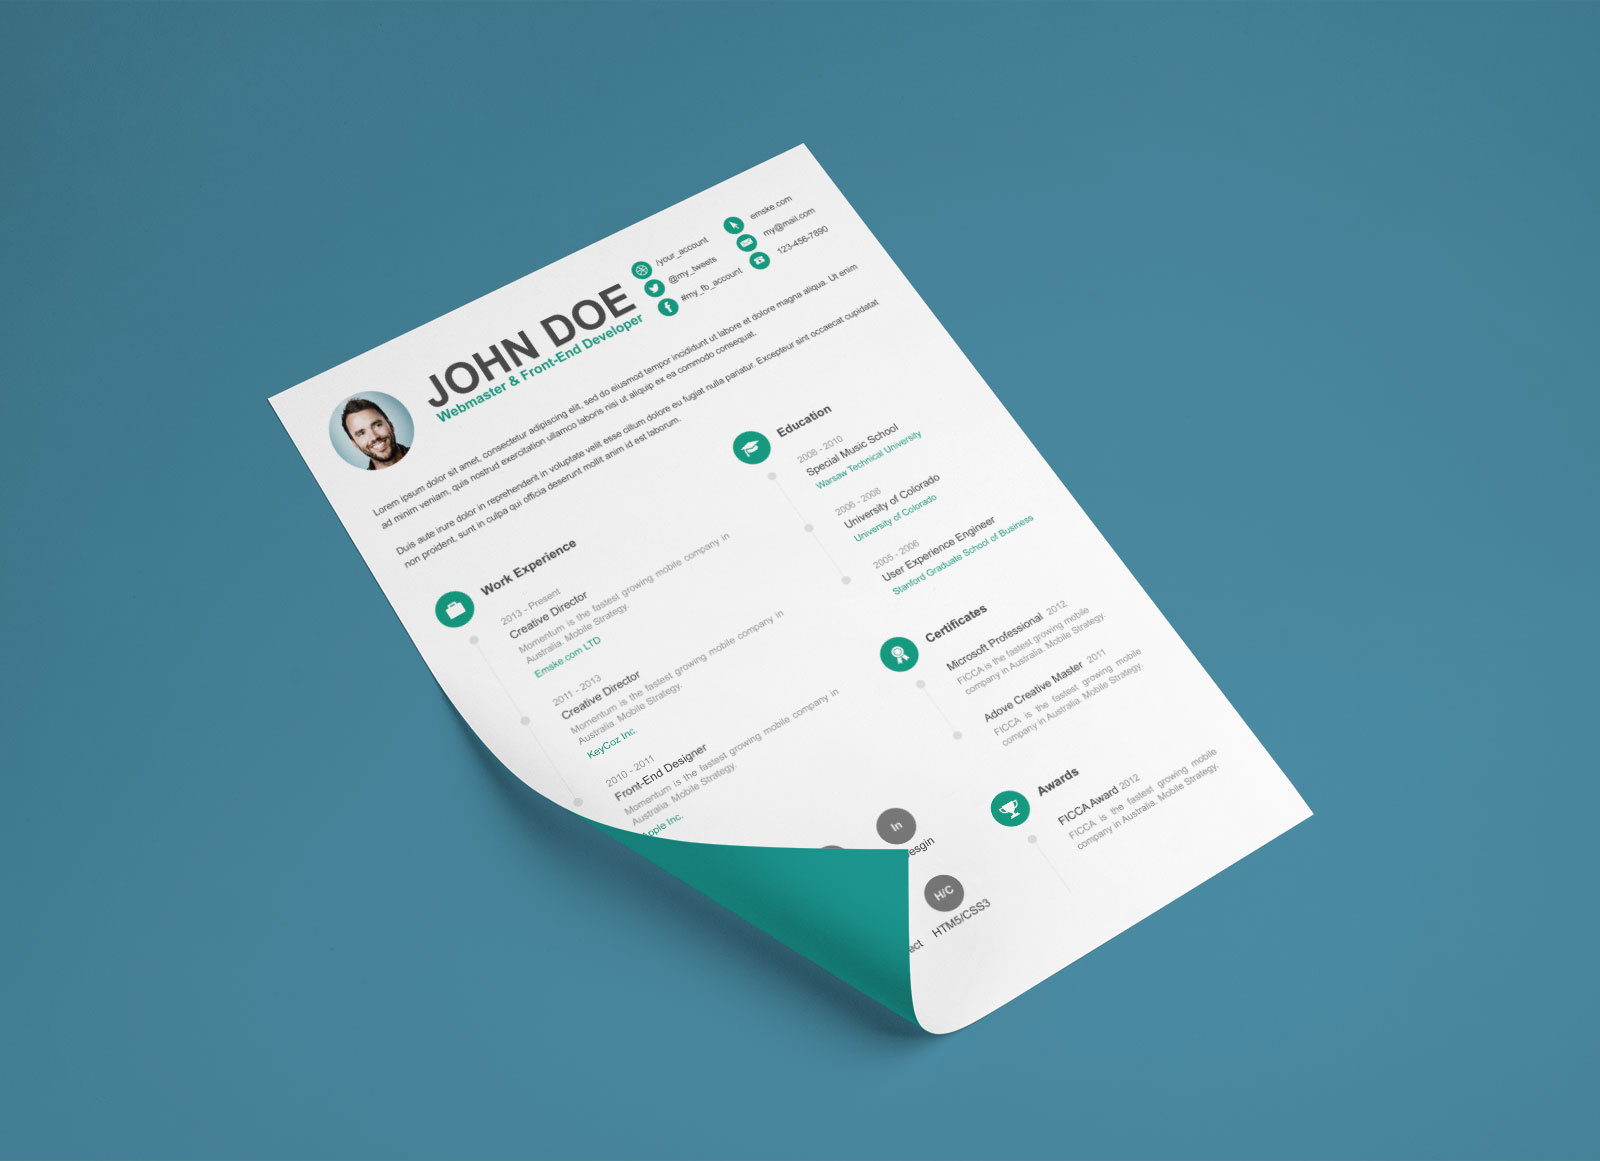 Free-PSD-Resume-CV-Template-for-Webmaster-&-Front-End-Developer-1